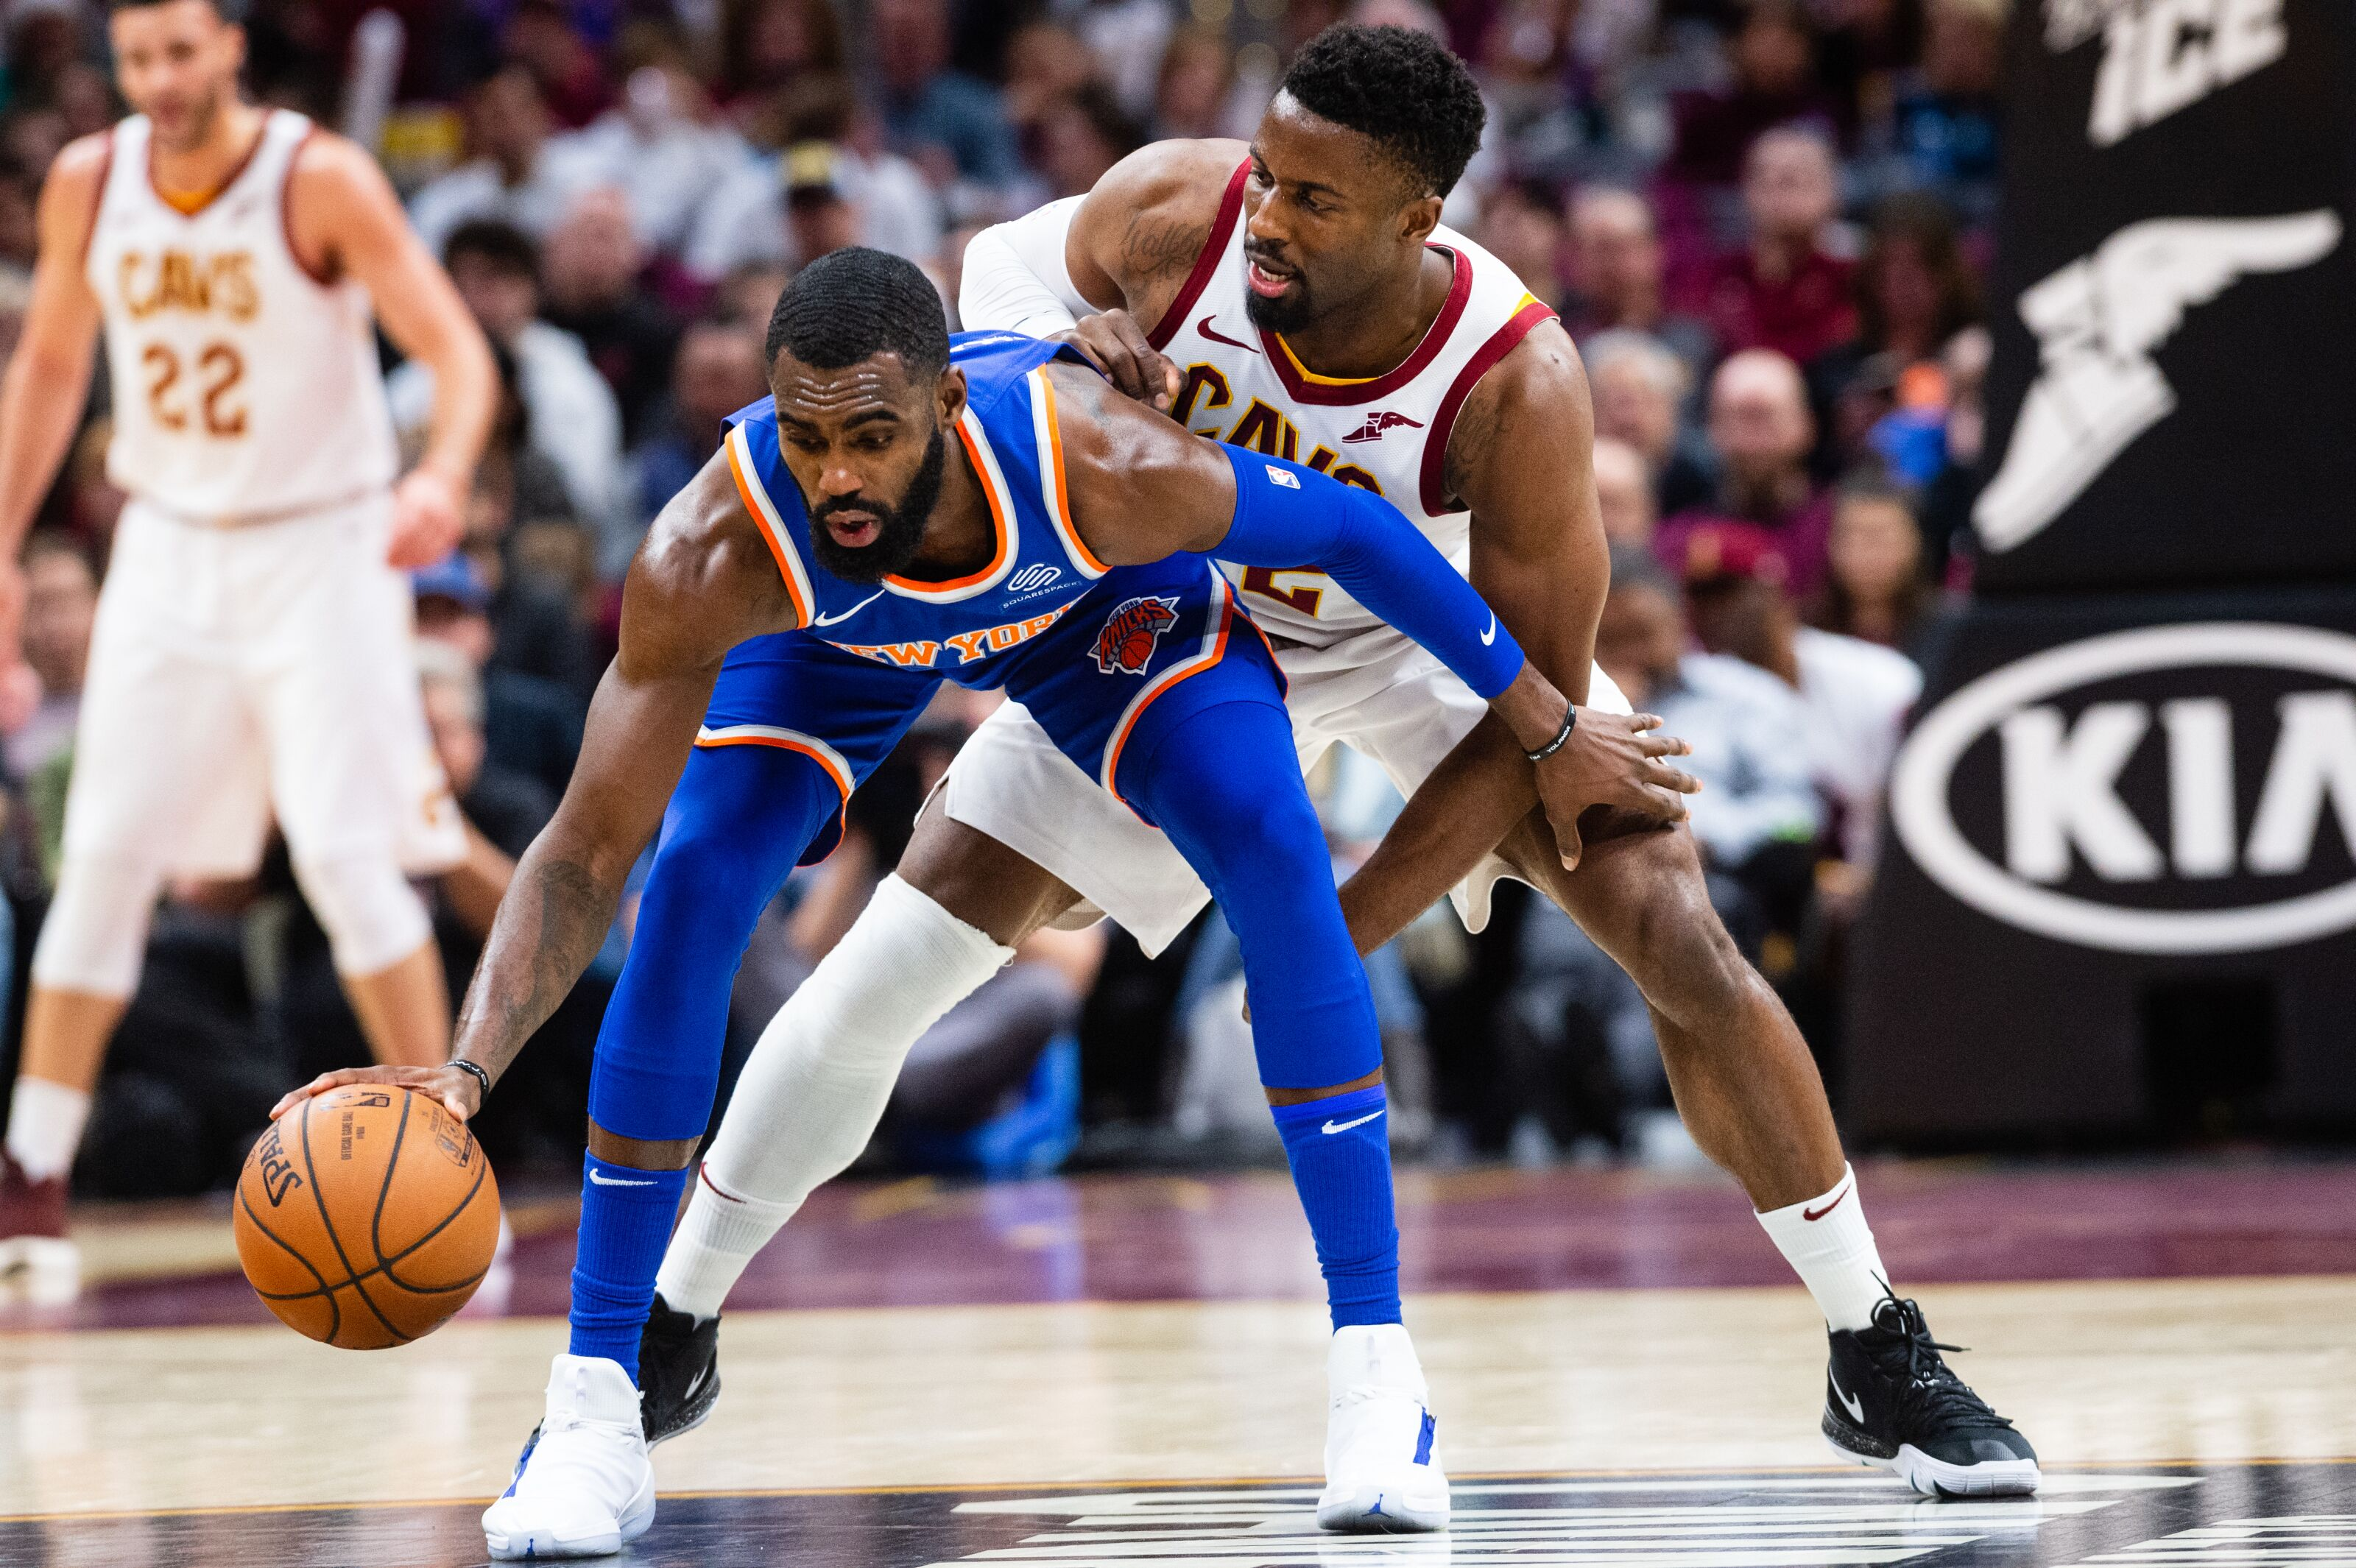 New York Knicks: Comeback kids can't fully capitalize against Cavaliers